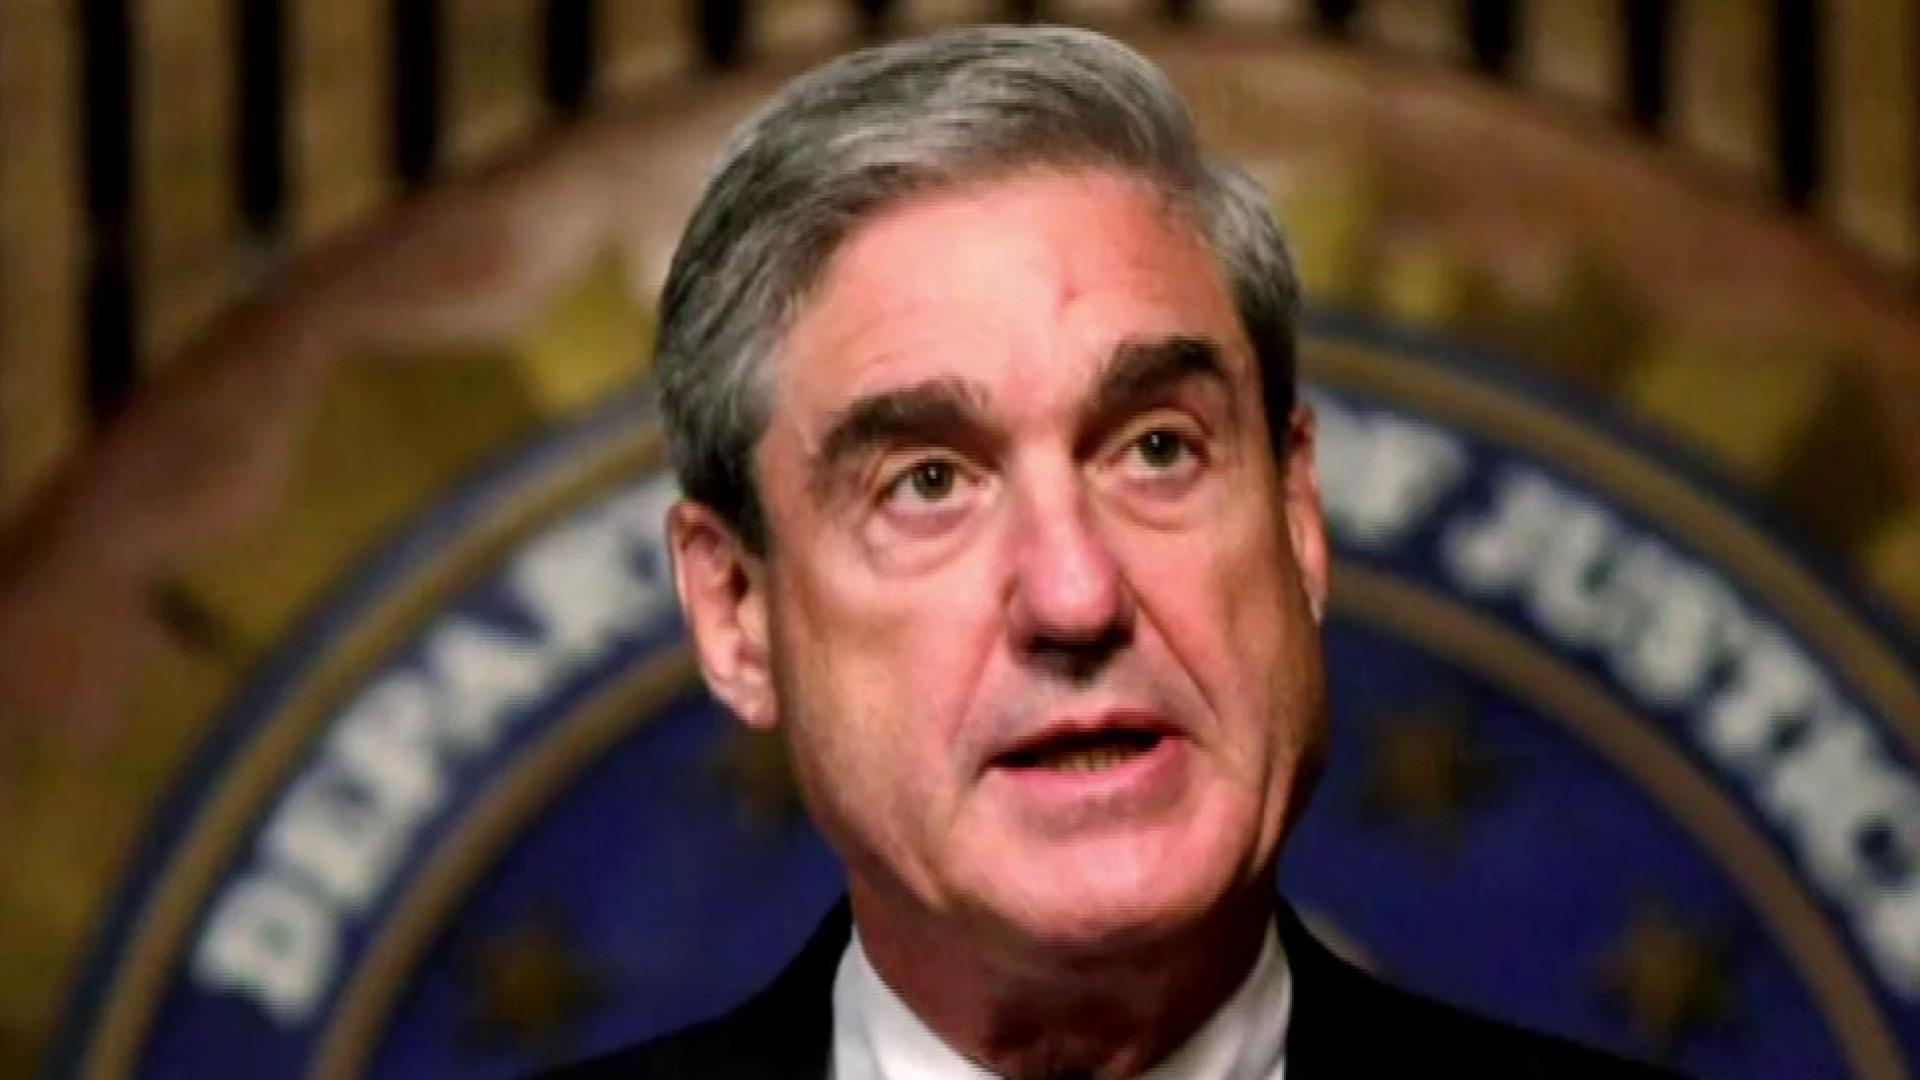 Democrats in Congress calling to see full Mueller report